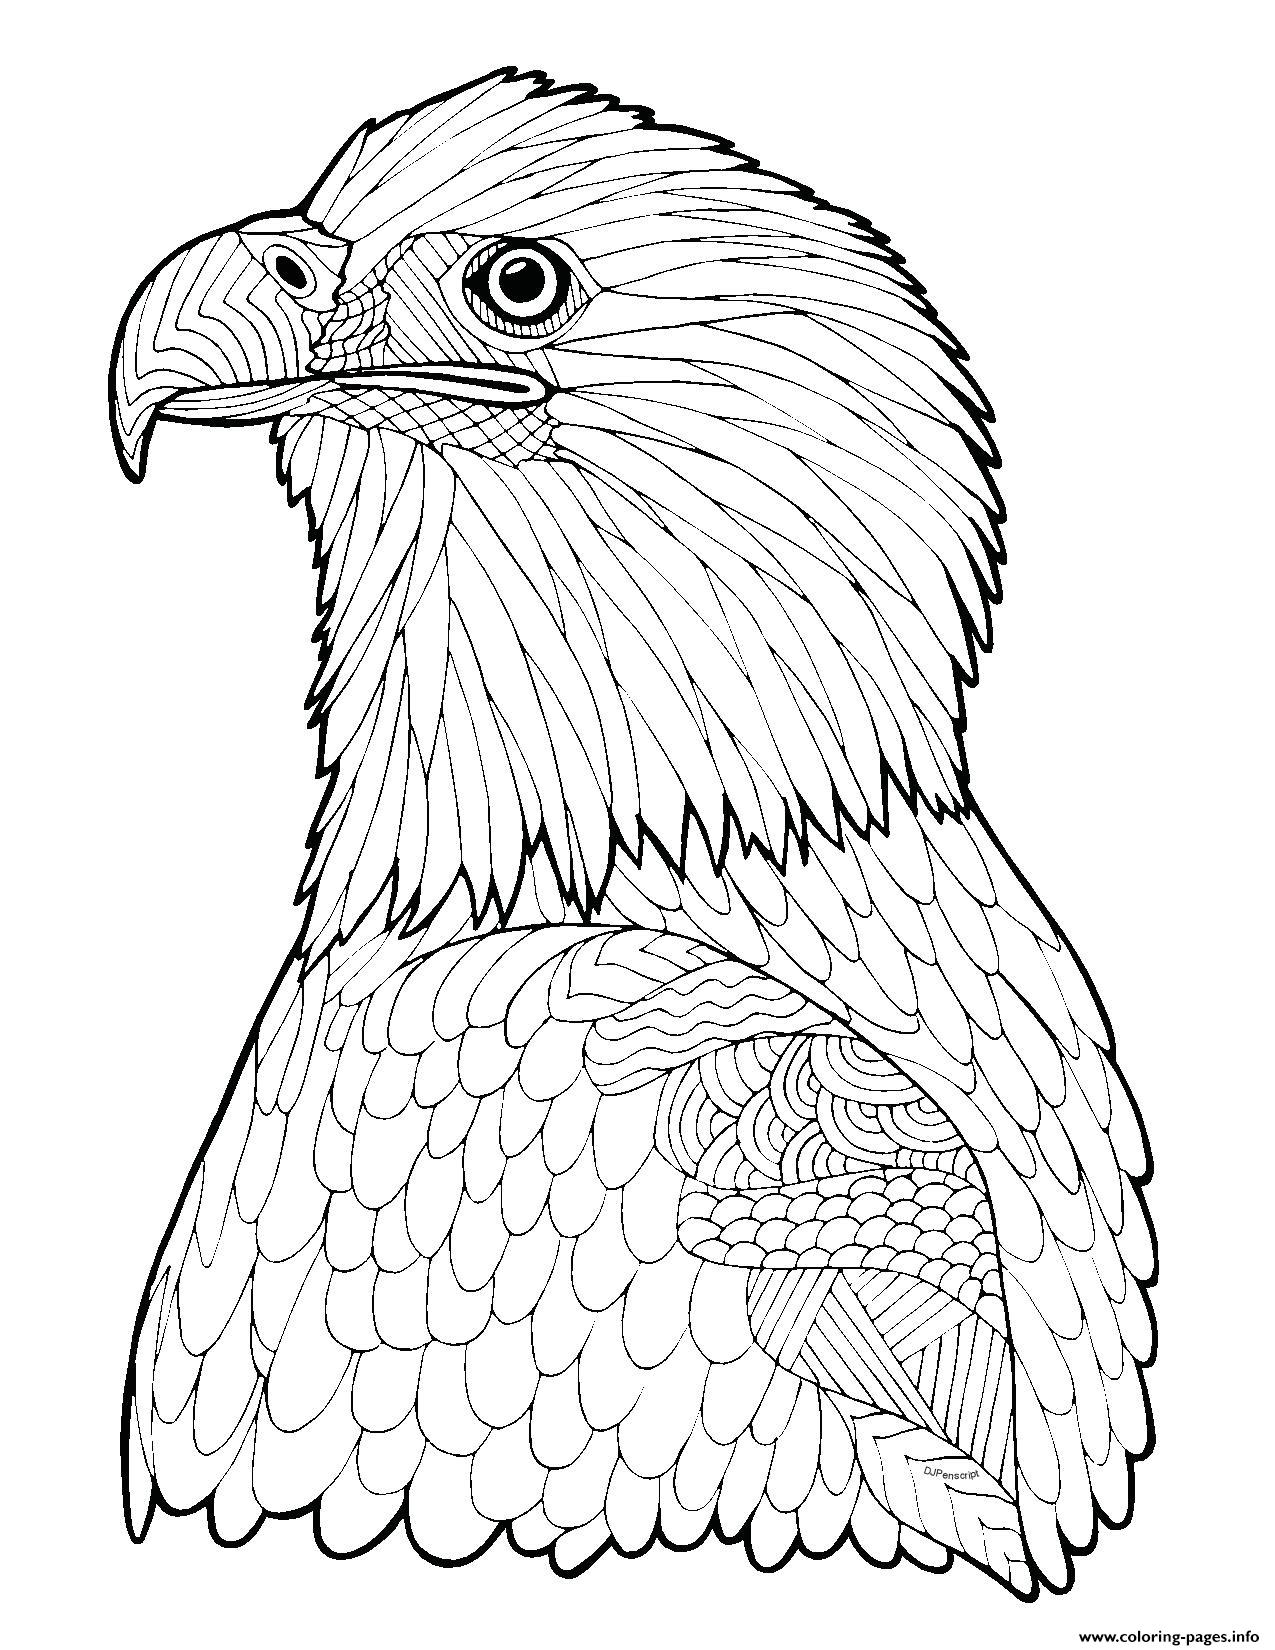 coloring pages of eagles free eagle coloring pages pages of coloring eagles